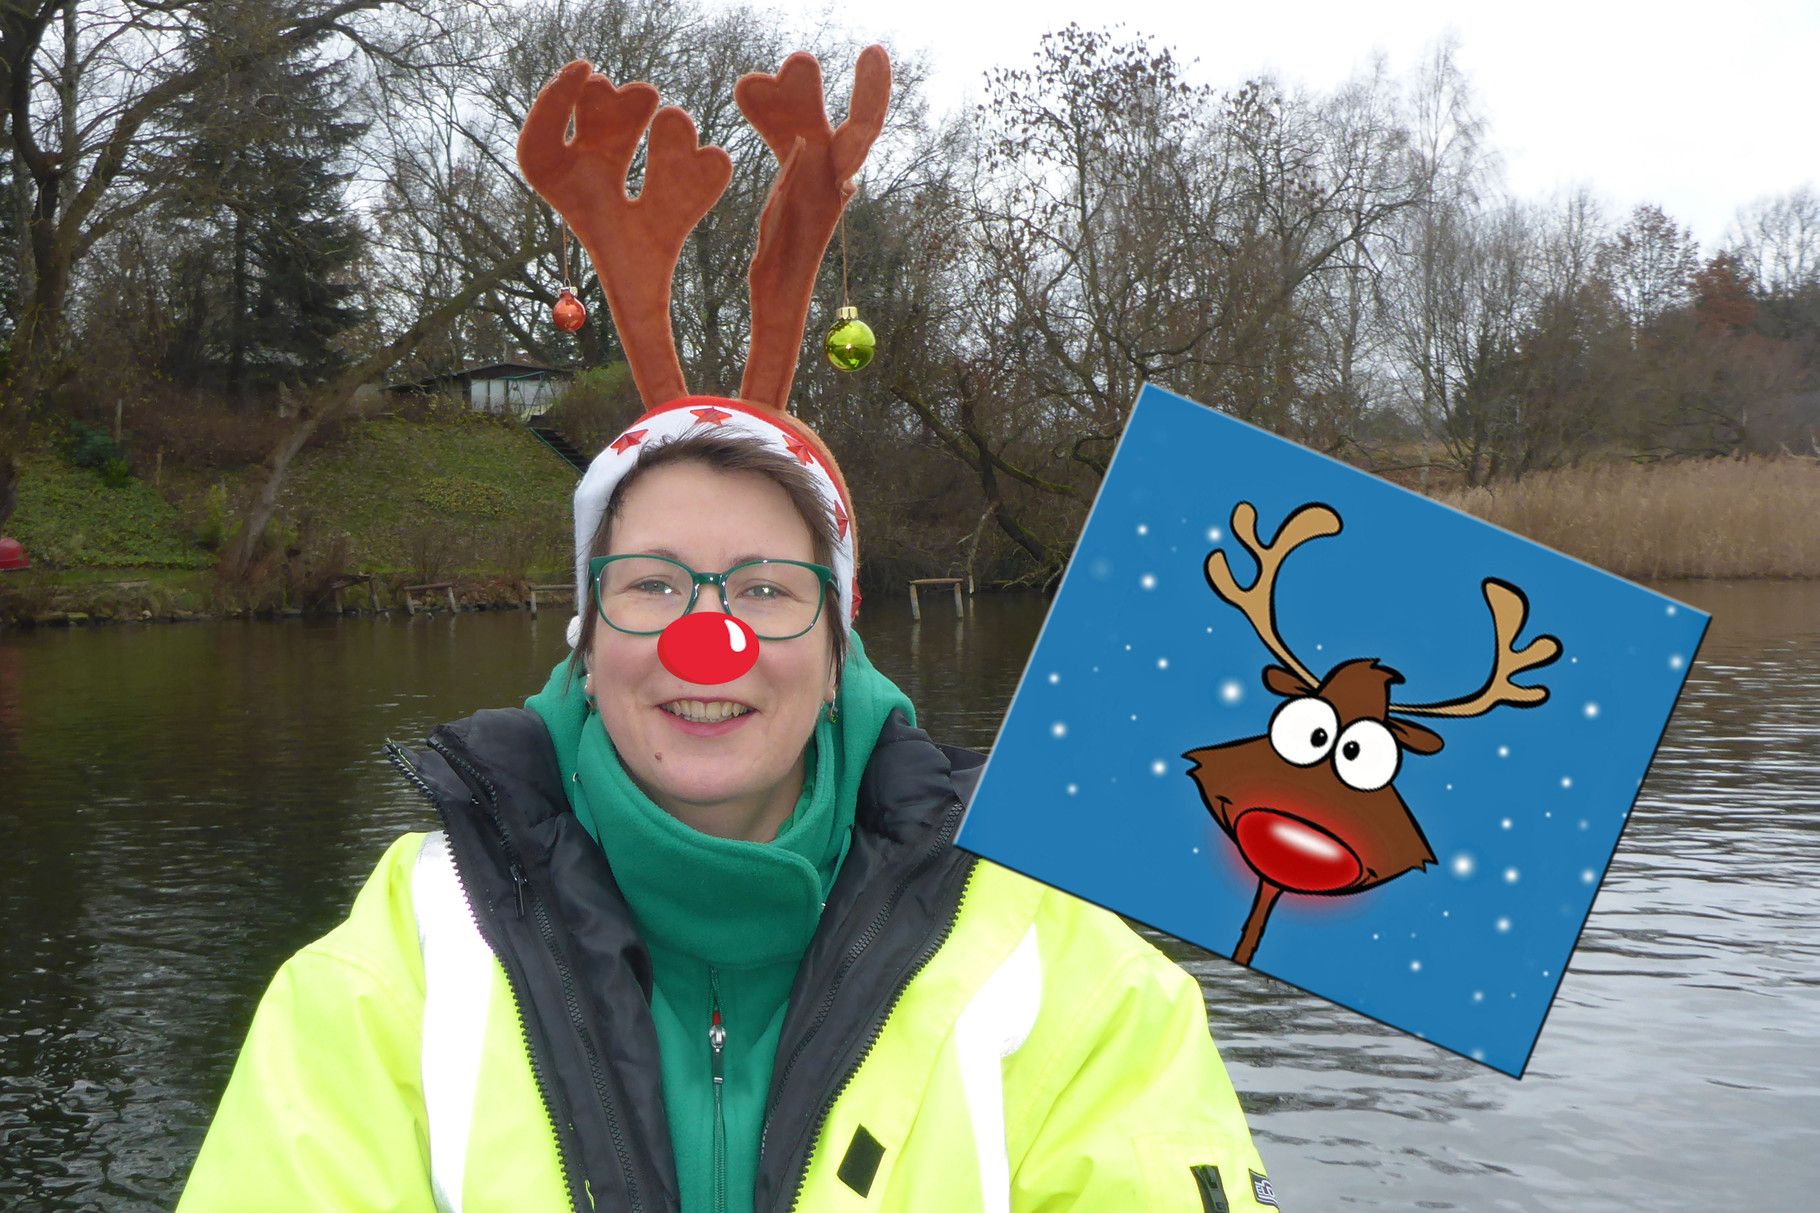 Rudolph with your nose so bright, won't you guide my boat tonight?